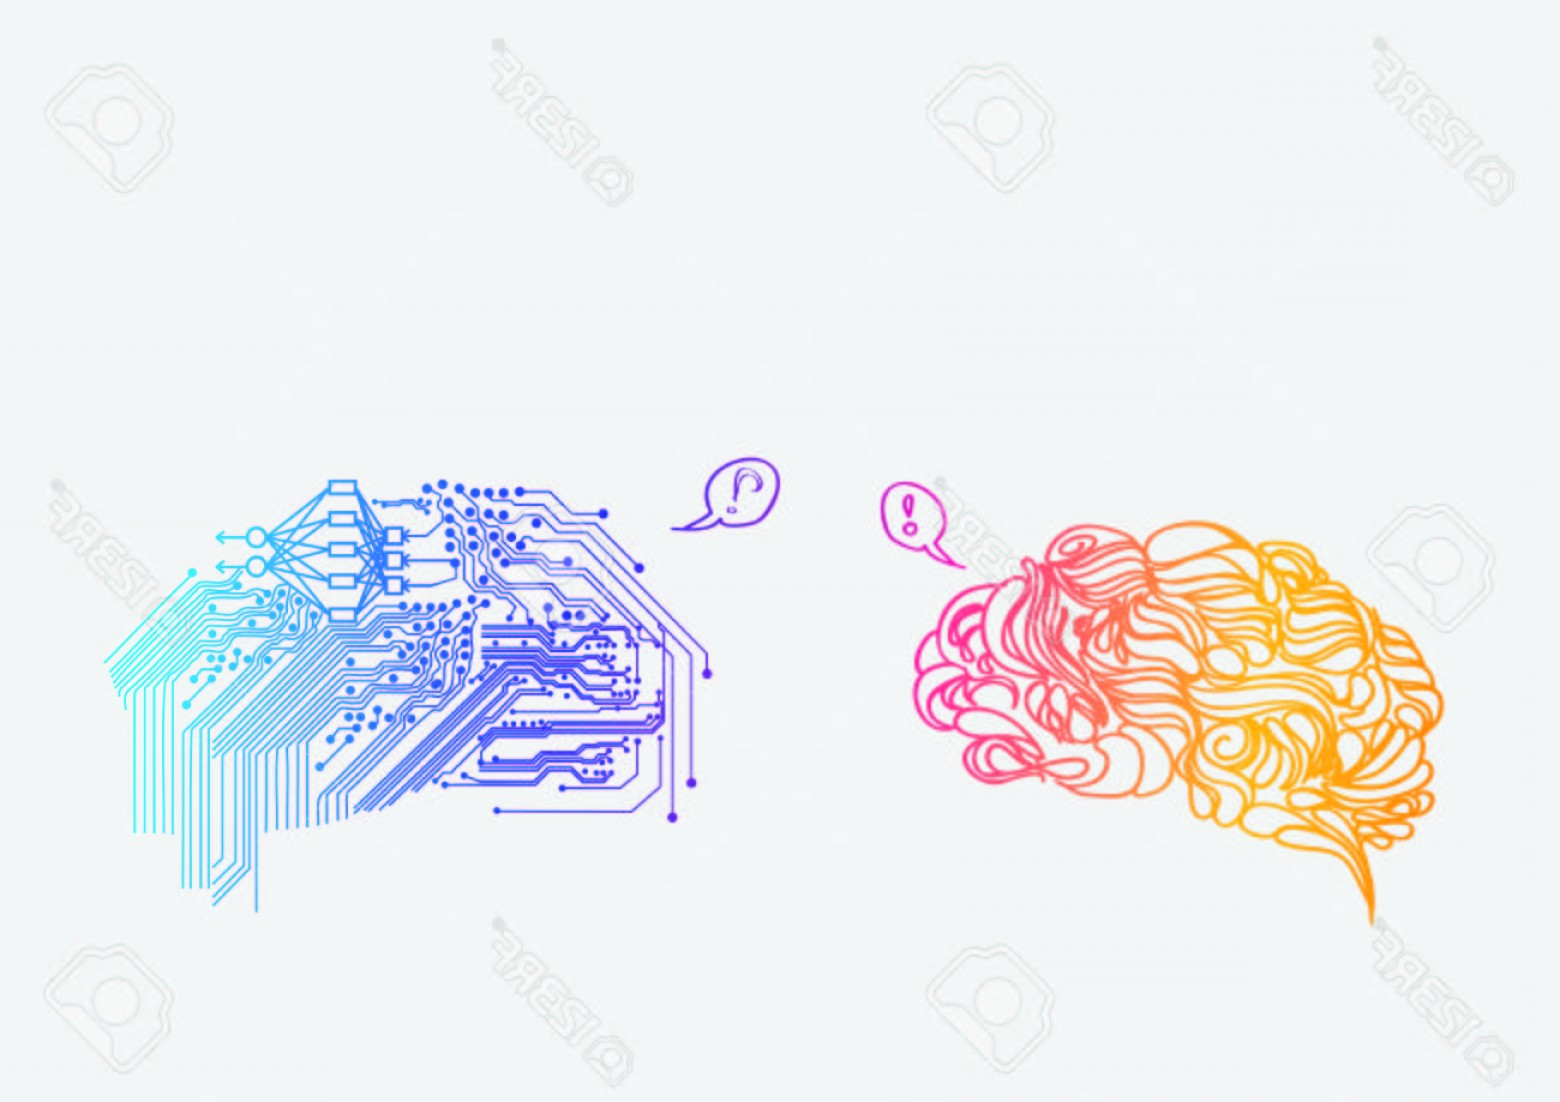 Vector Editors Disadvantages: Photostock Vector Human Brain Versus Cyber Brain Advantages And Disadvantages Of Artificial Intelligence Against The H